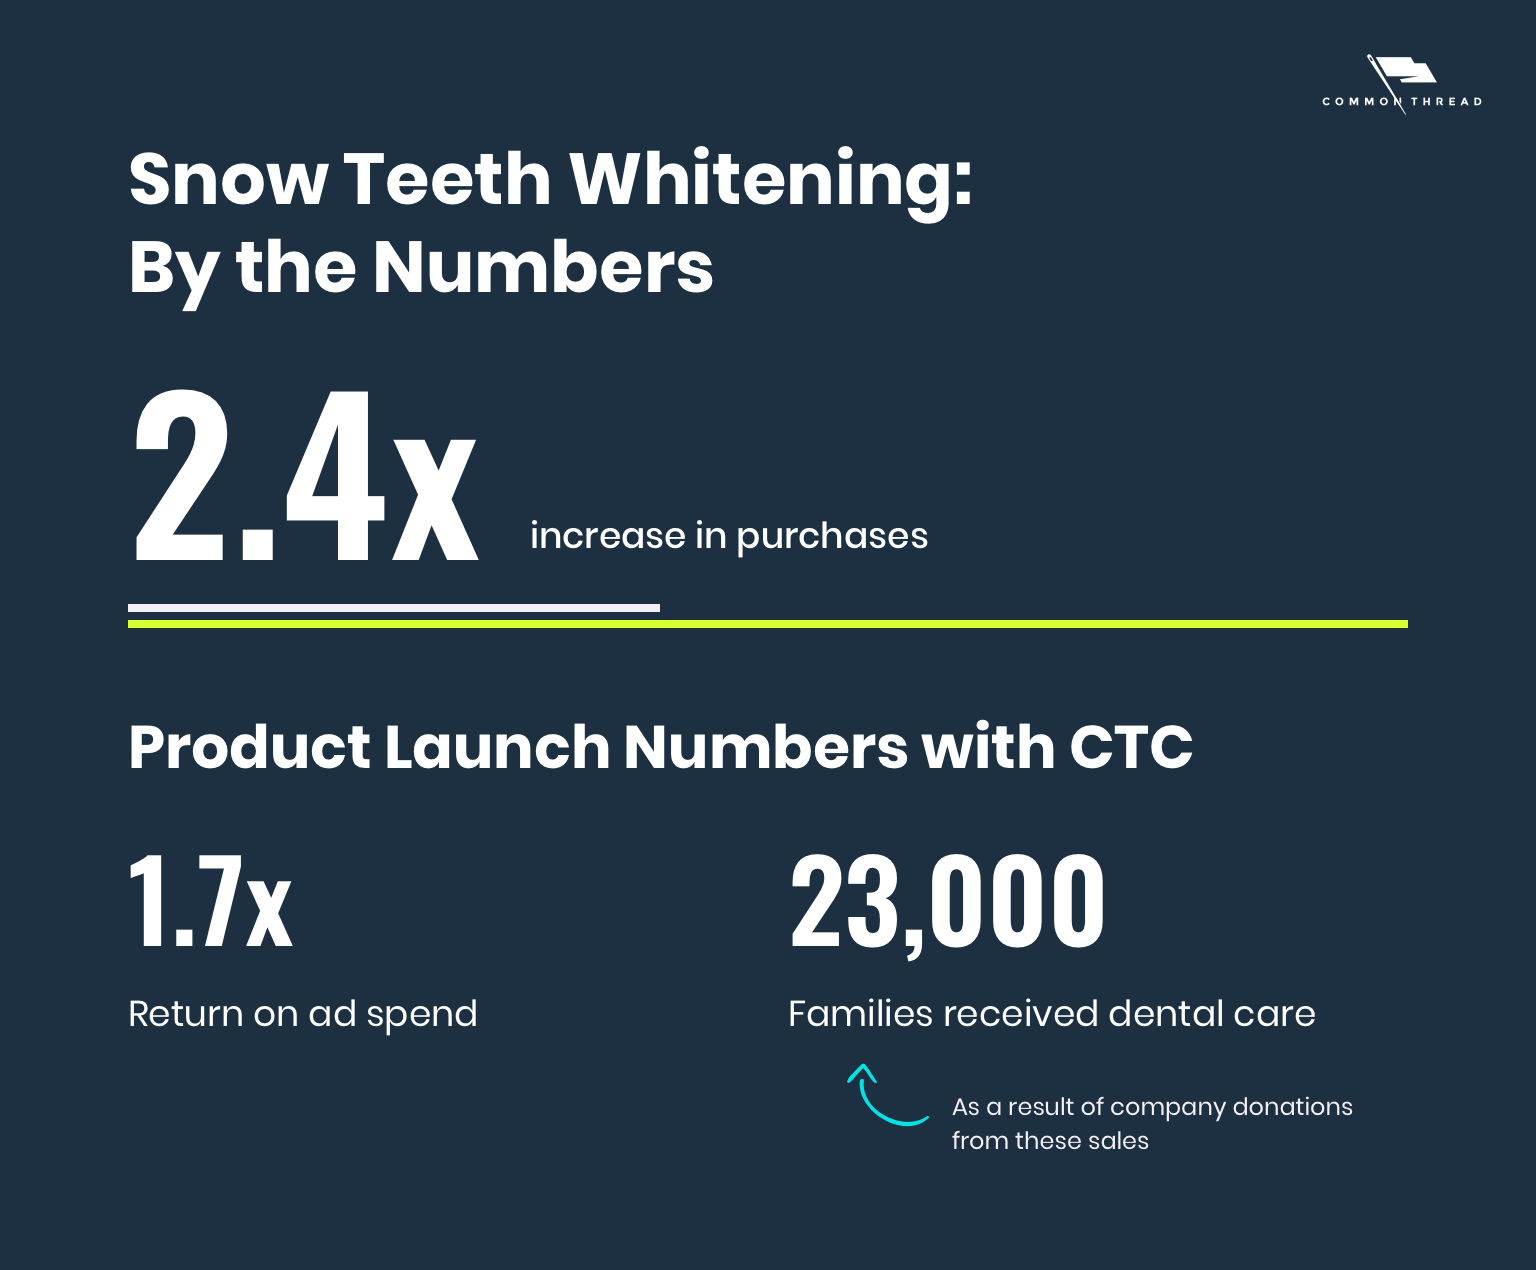 Snow Teetch Whitening by the numbers